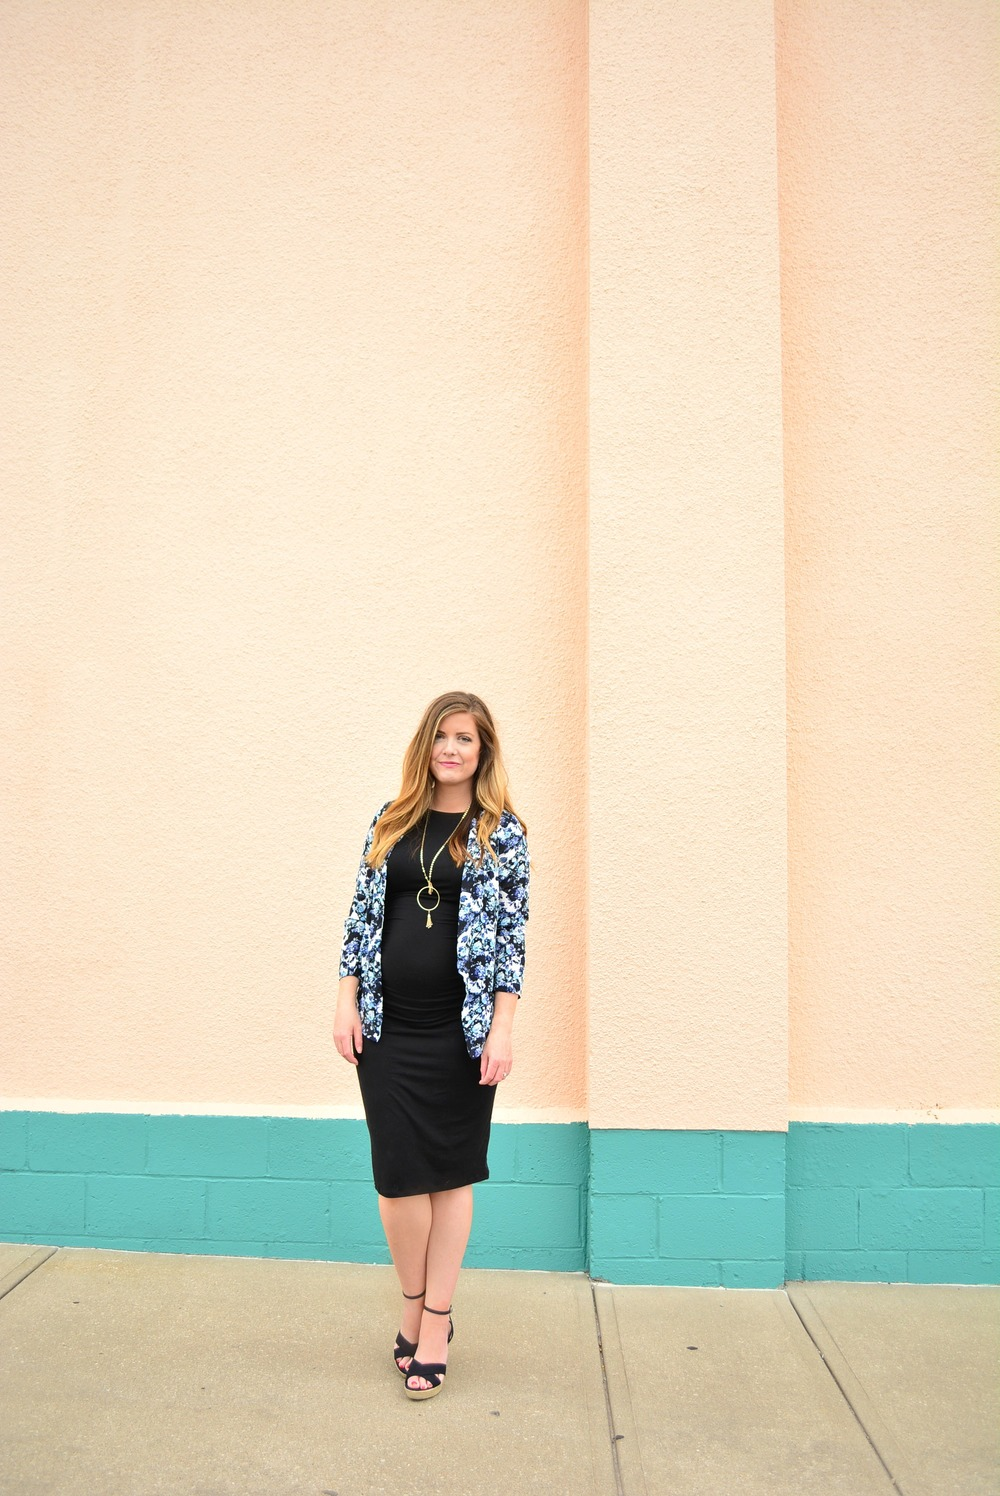 Black fitted dress + Floral jacket + Black Espadriles maternity outfit